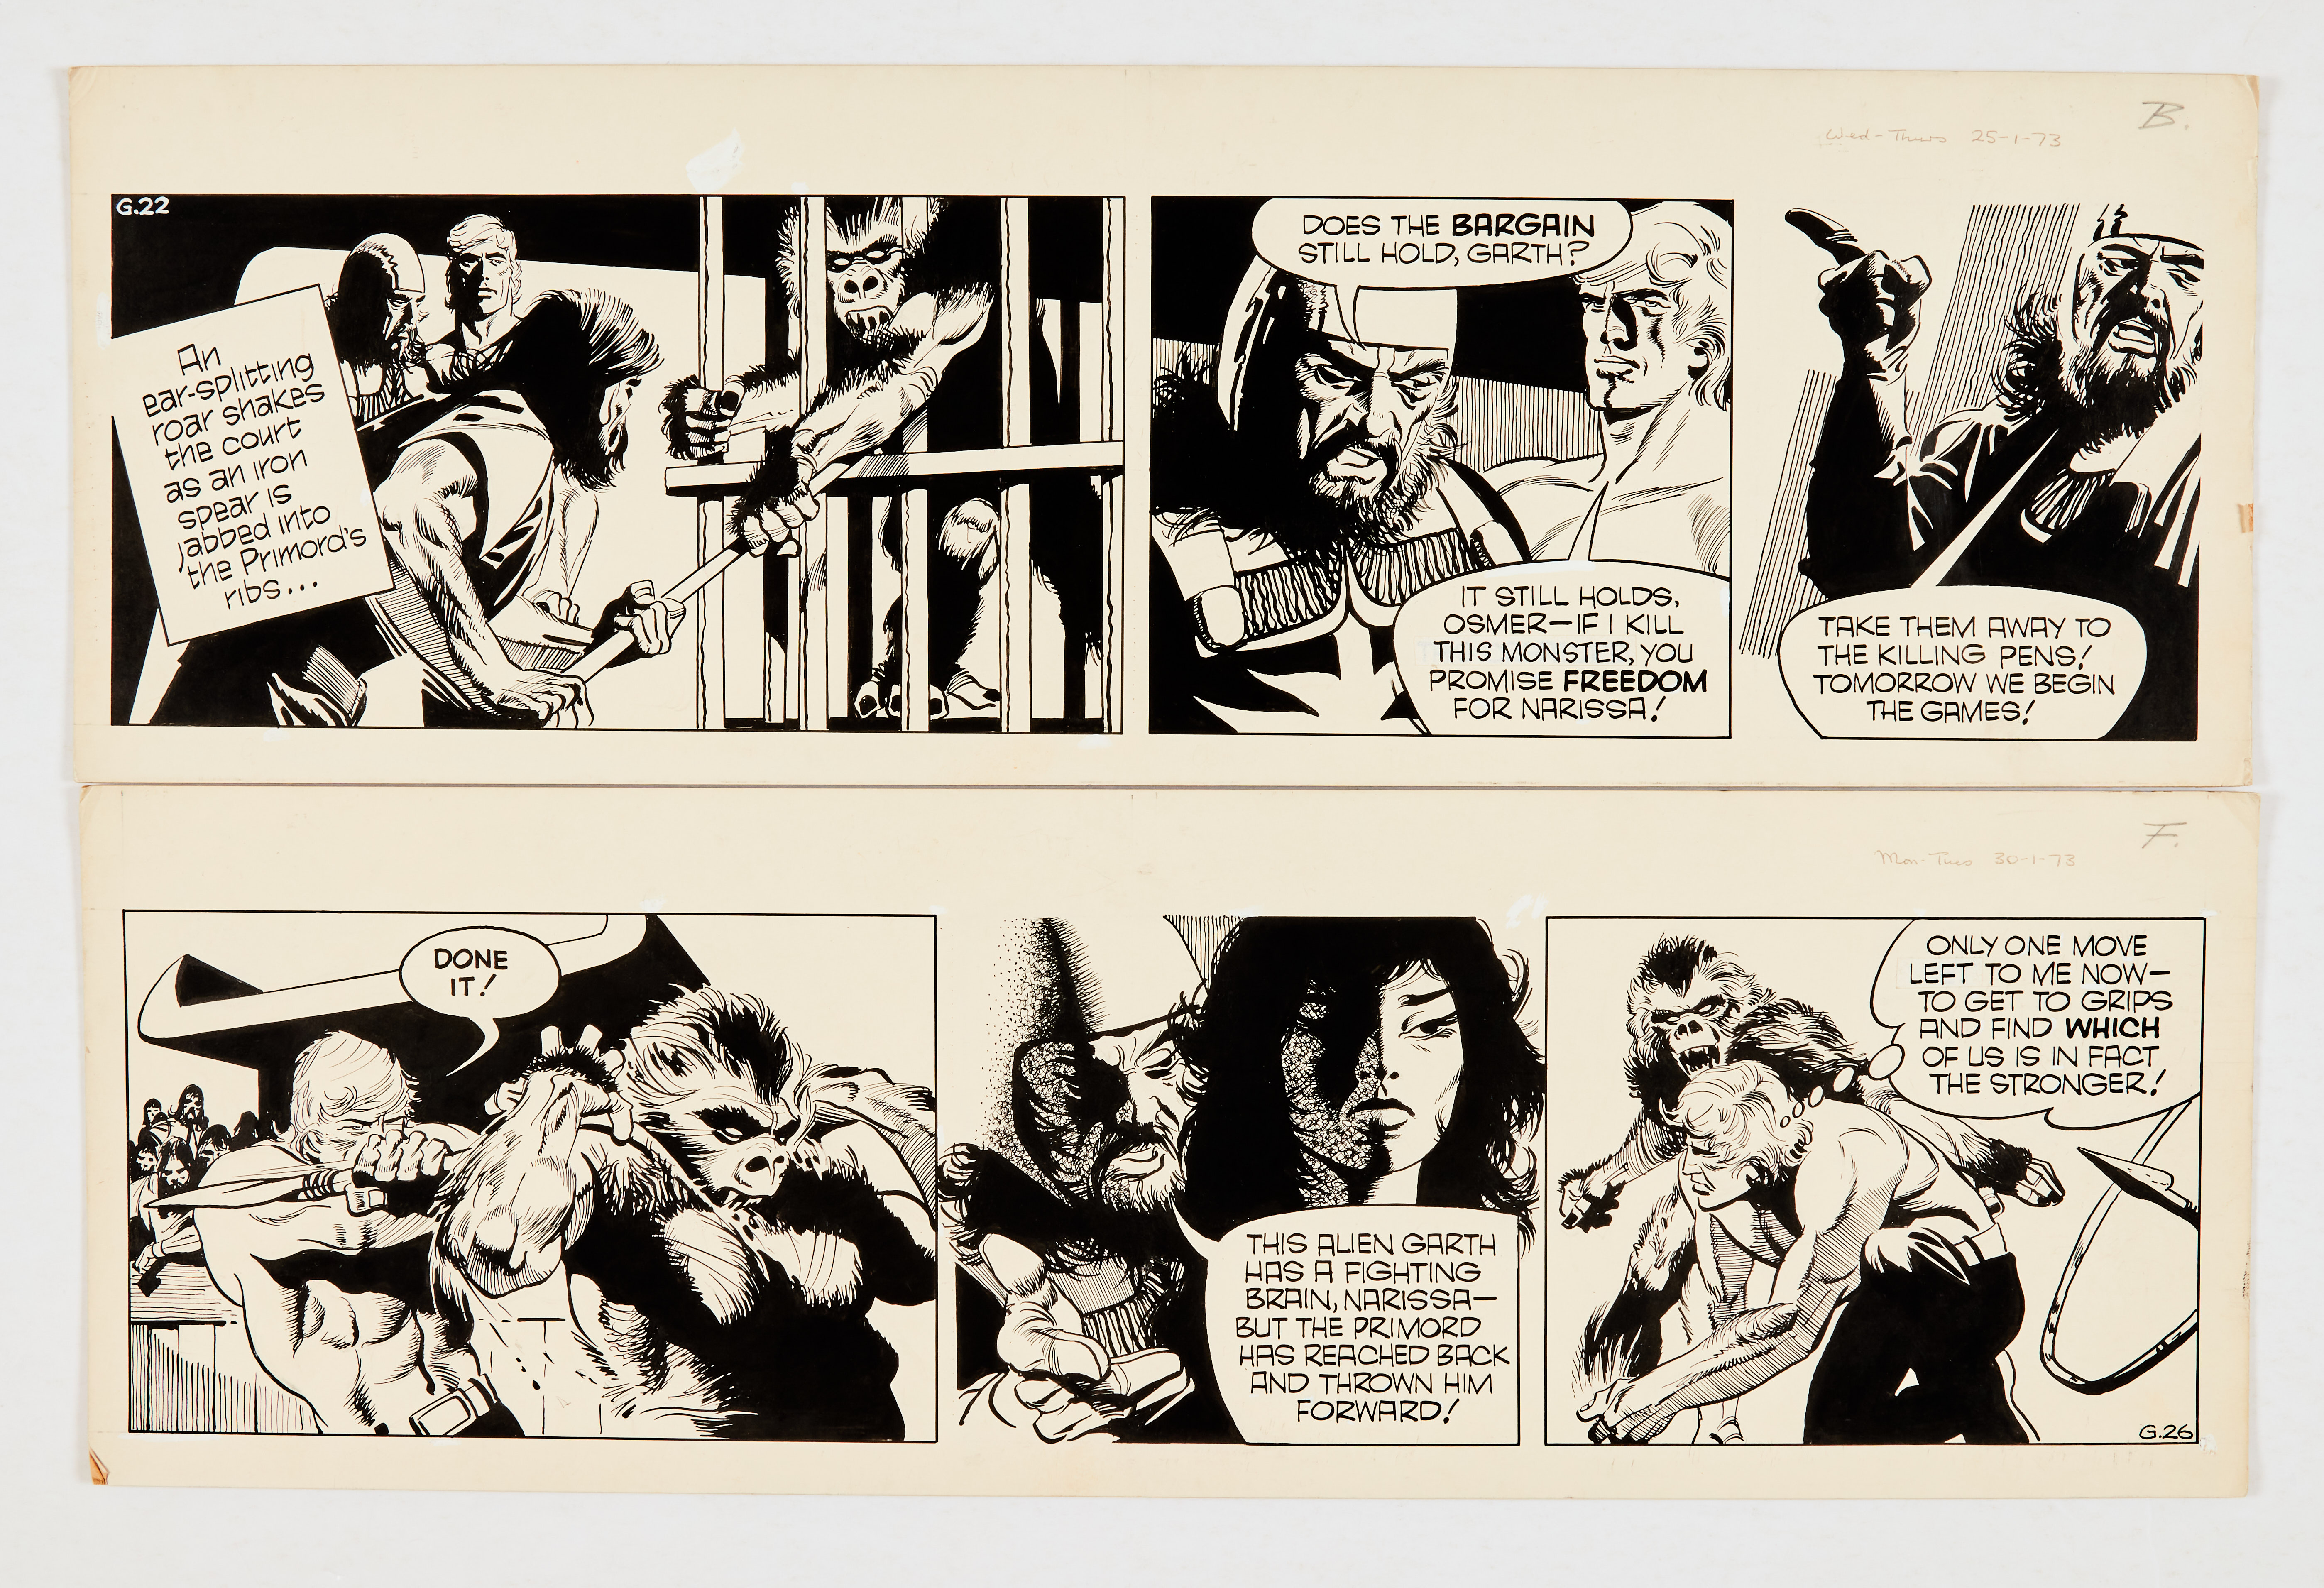 Garth: 'The Women of Galba' two original artworks (1973) by Frank Bellamy for the Daily Mirror 25/30